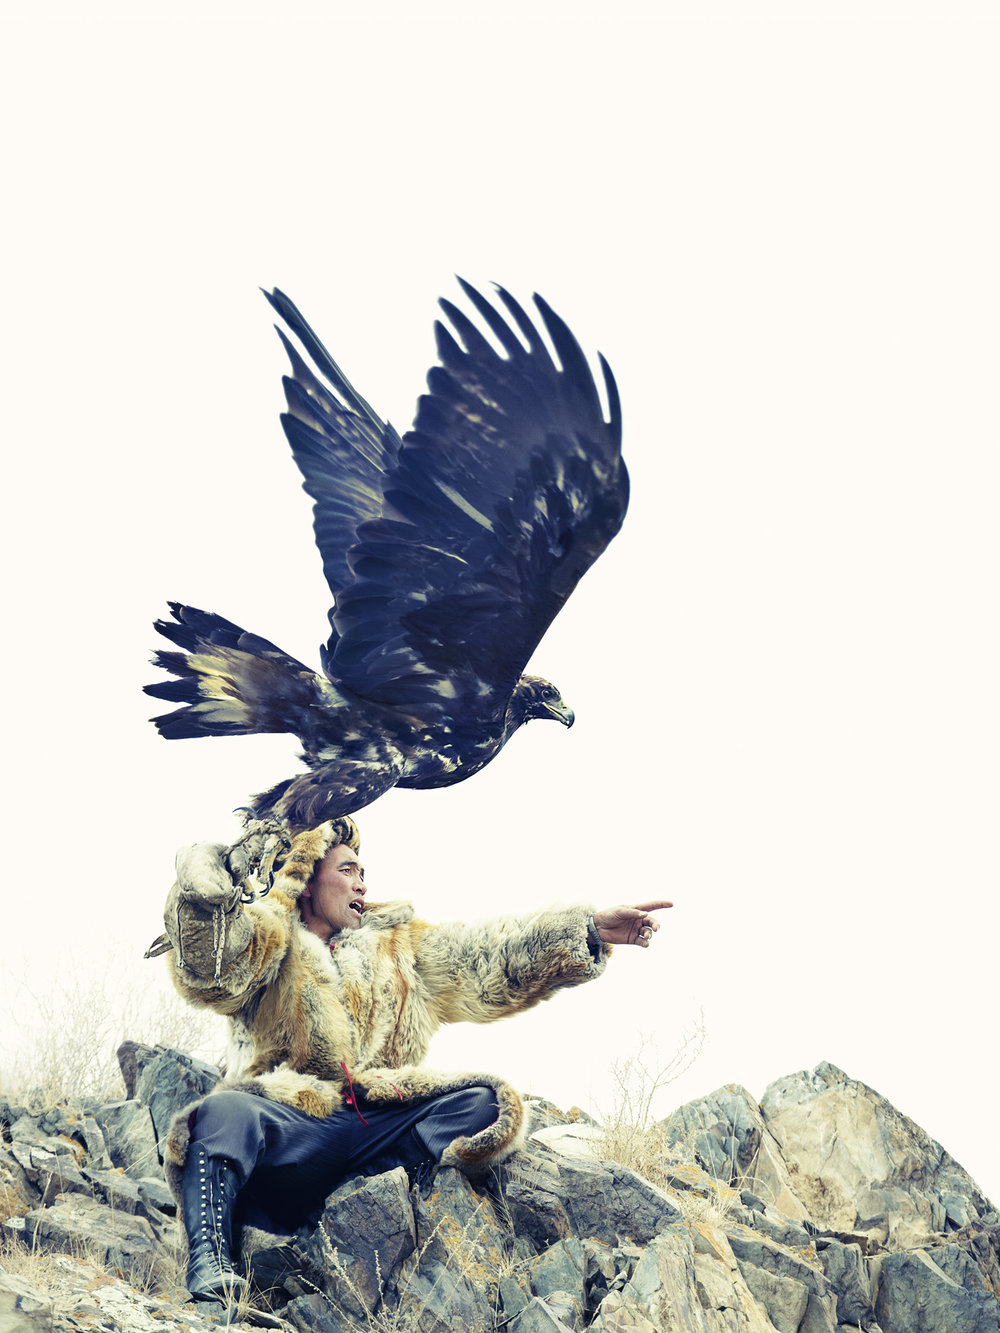 Medium_Owerko_Eagle Hunter print_16.jpg